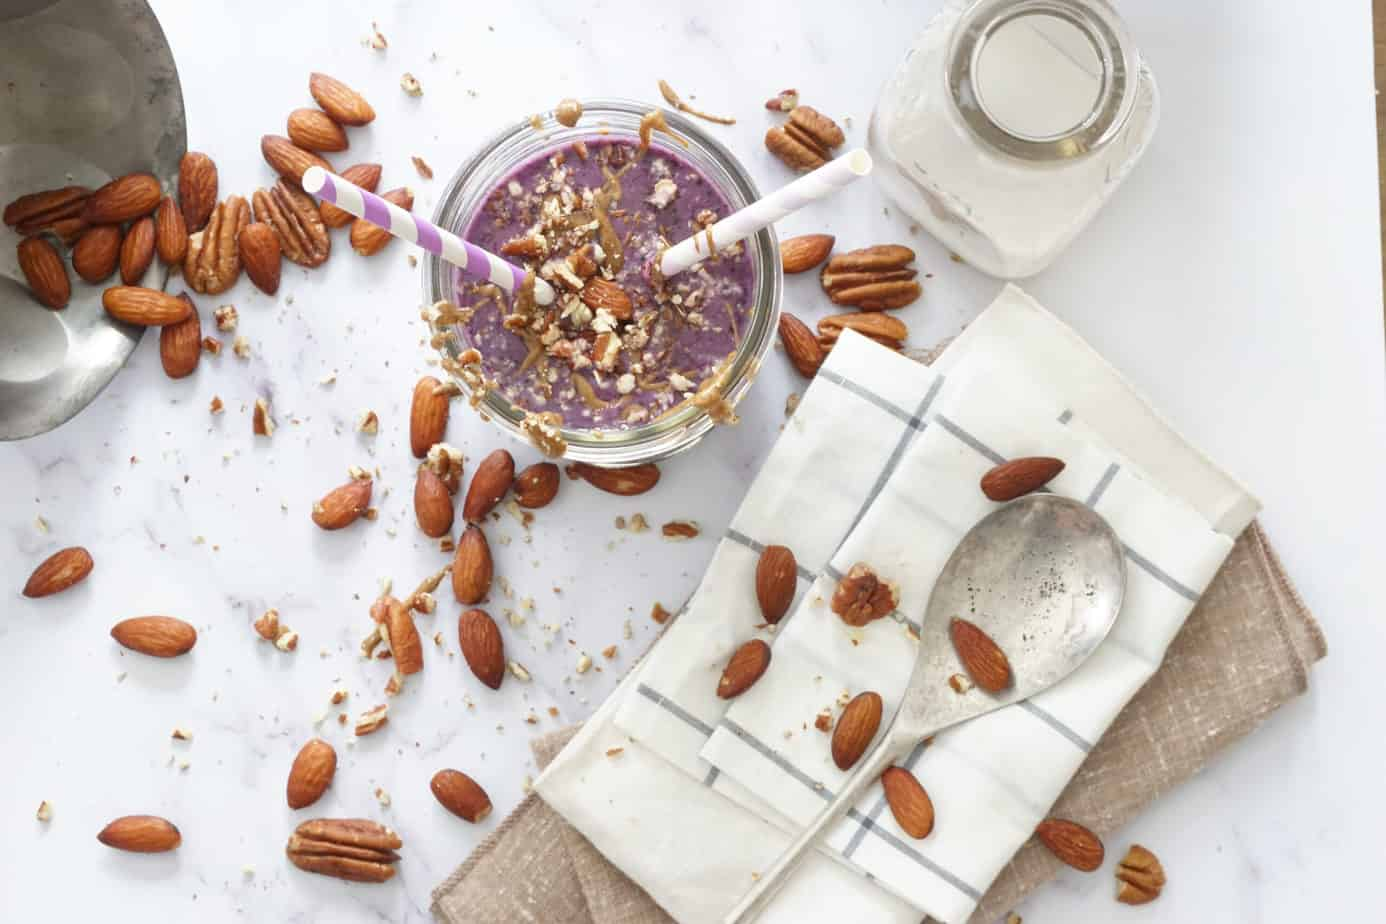 blueberry almond milk smoothie with ingredients